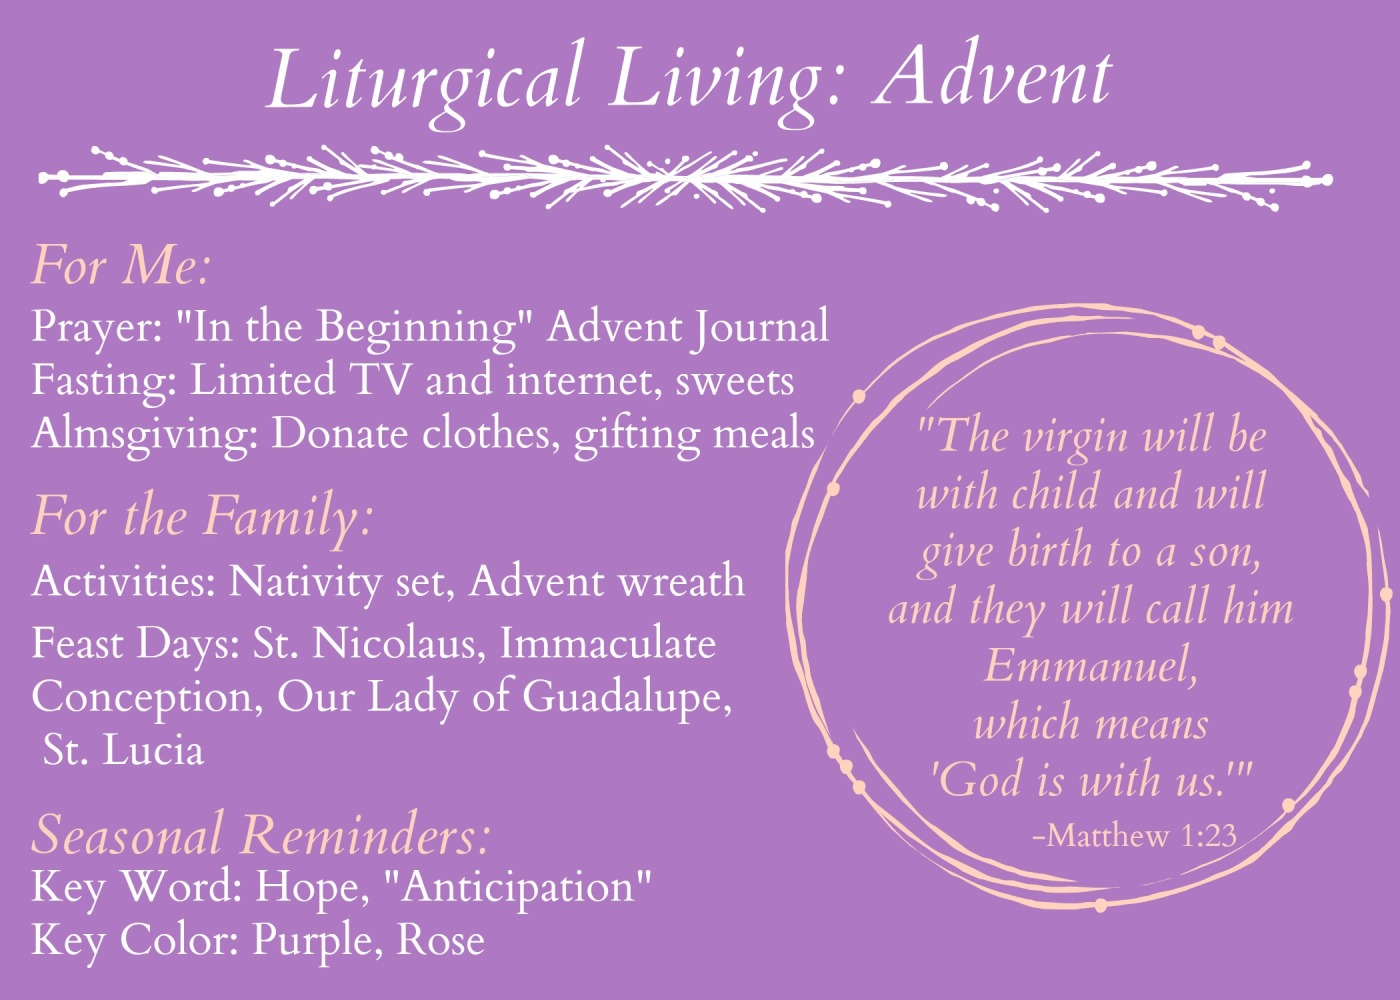 Liturgical living Advent